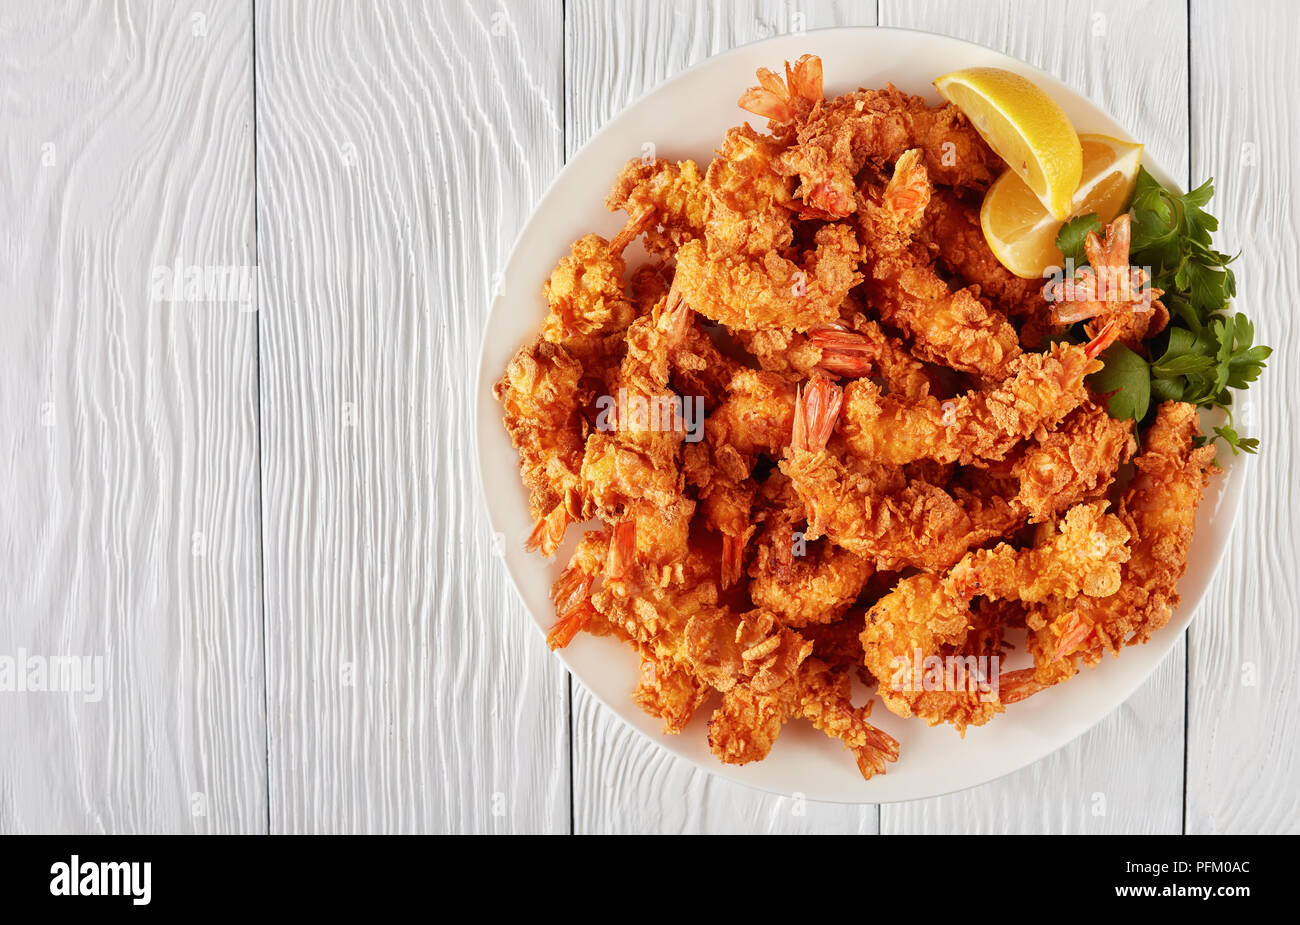 corn flakes breaded deep-fried shrimps on a white plate, view from above, flat lay - Stock Image